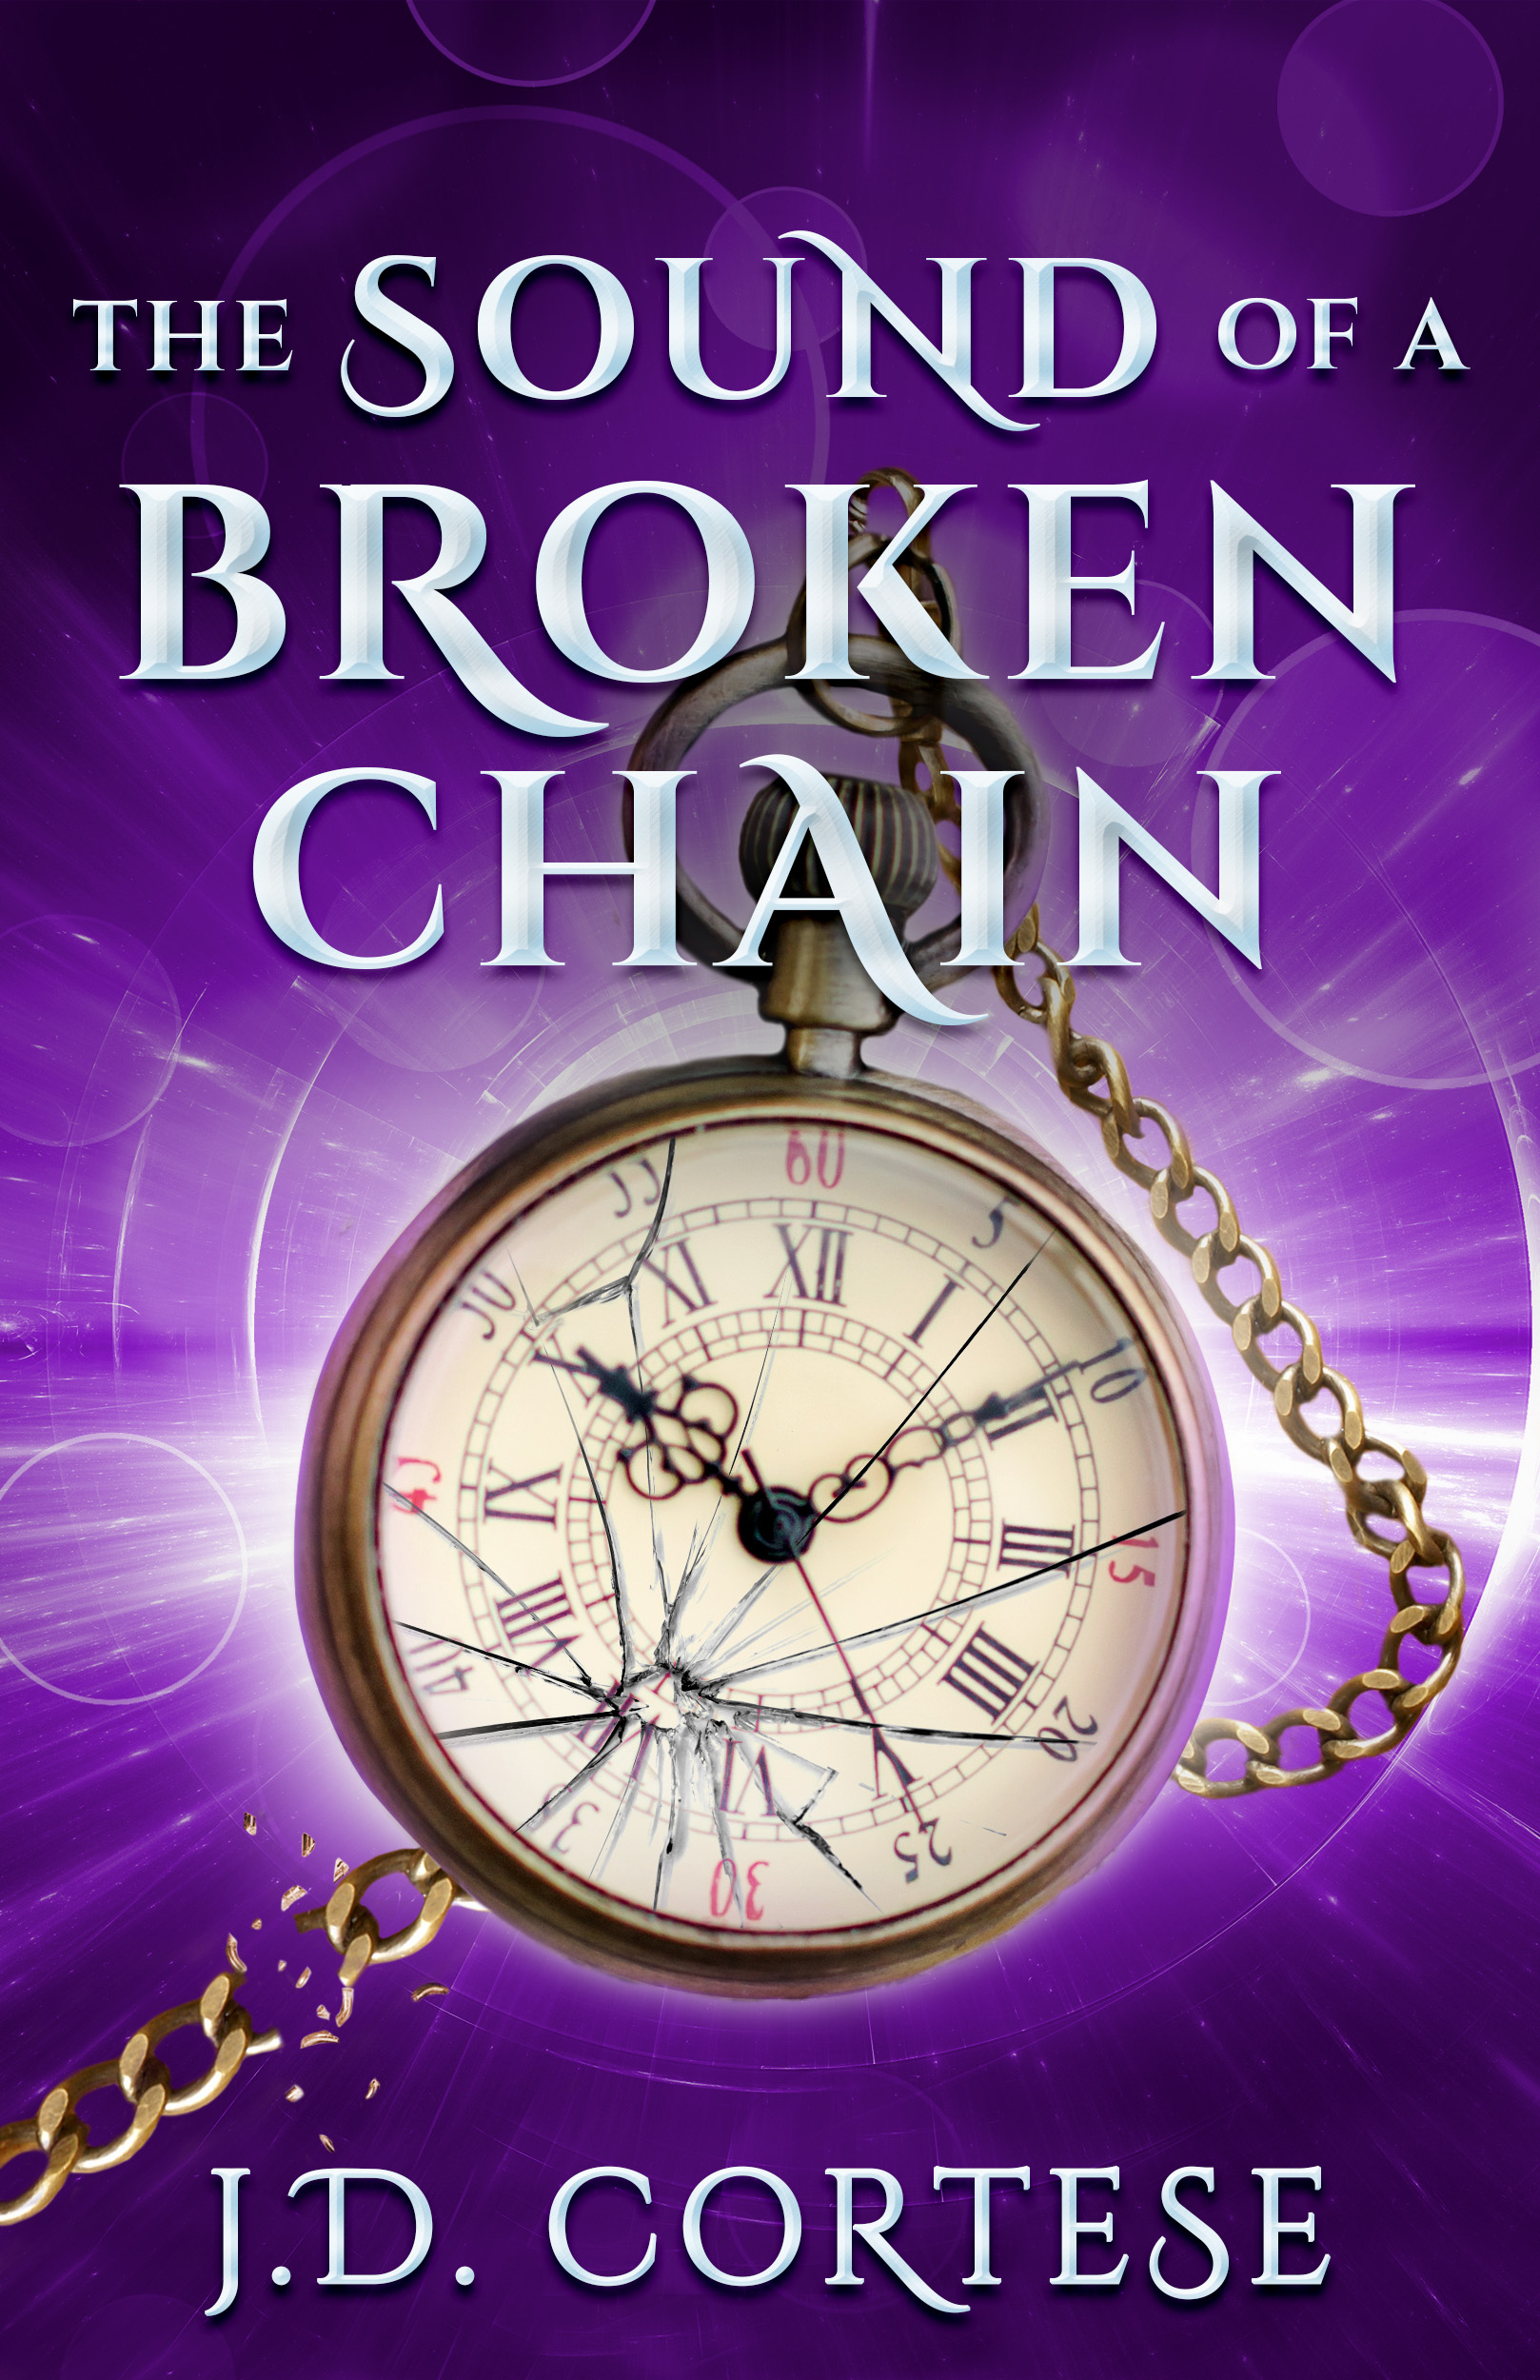 The-Sound-of-a-Broken-Chain-1.jpg